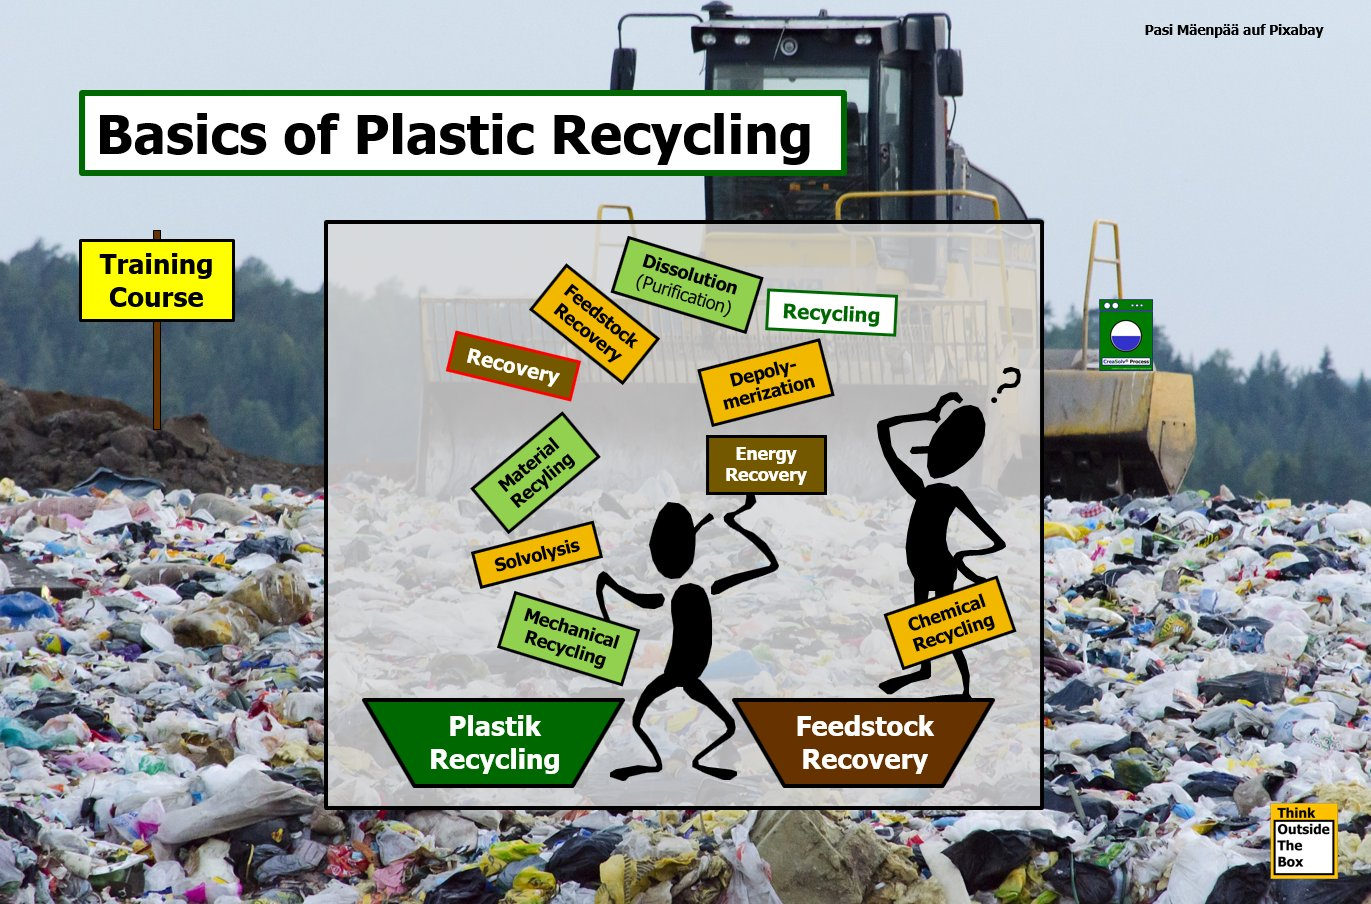 2020.04.01 Basics of Plastic Recycling Training Course